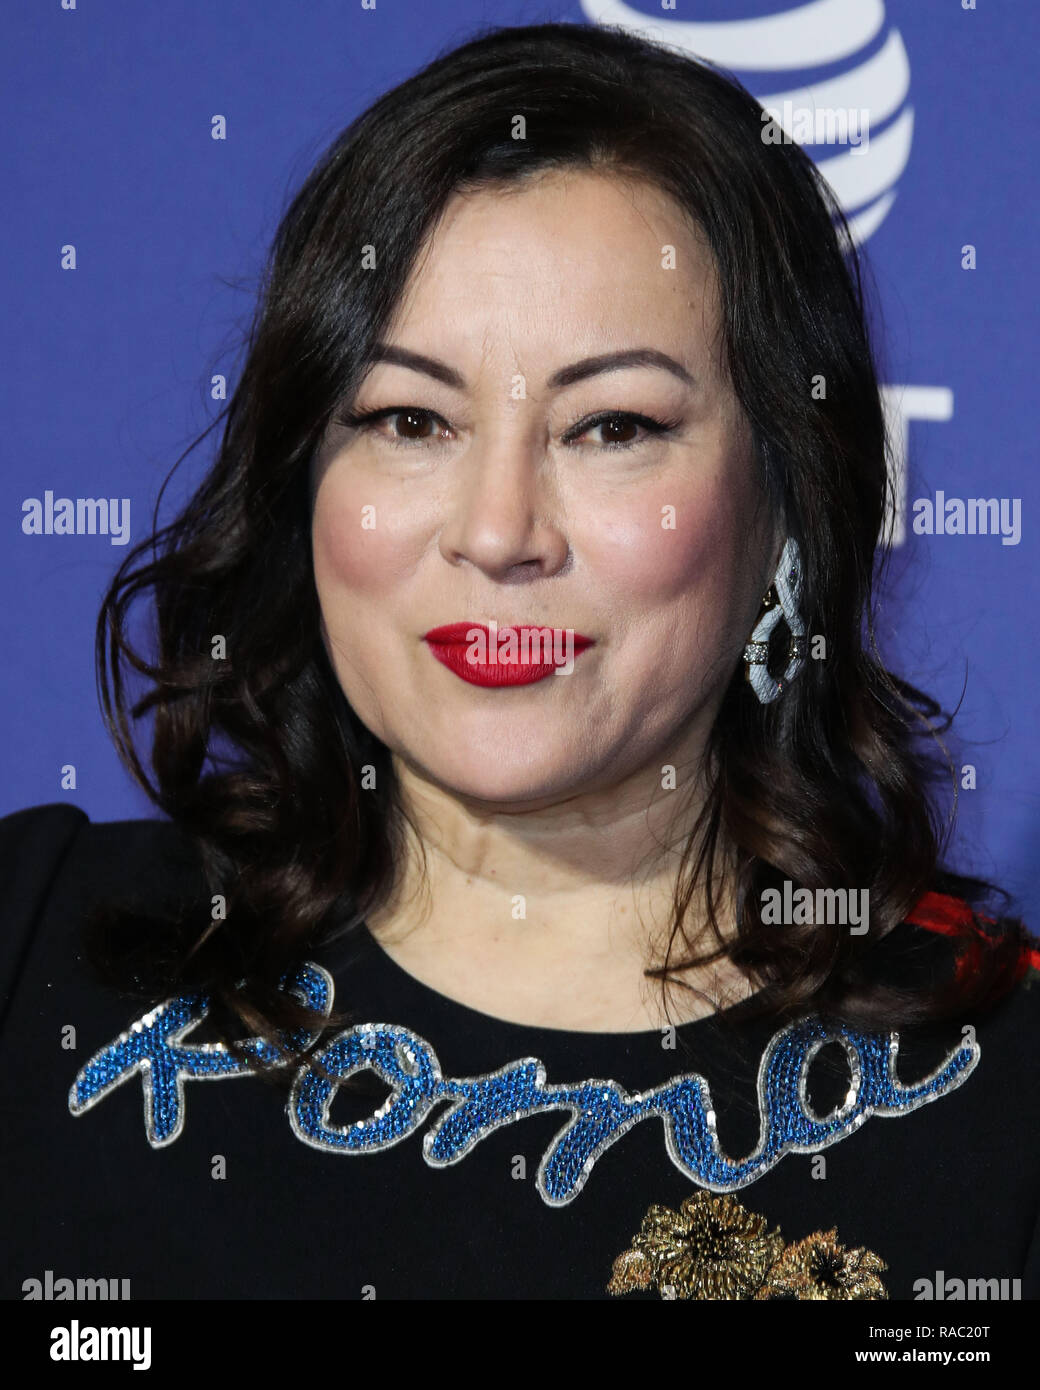 Palm Springs, California, USA. 3rd January, 2019. Jennifer Tilly arrives at the 30th Annual Palm Springs International Film Festival Awards Gala held at the Palm Springs Convention Center on January 3, 2019 in Palm Springs, California, United States. (Photo by Xavier Collin/Image Press Agency) Credit: Image Press Agency/Alamy Live News - Stock Image